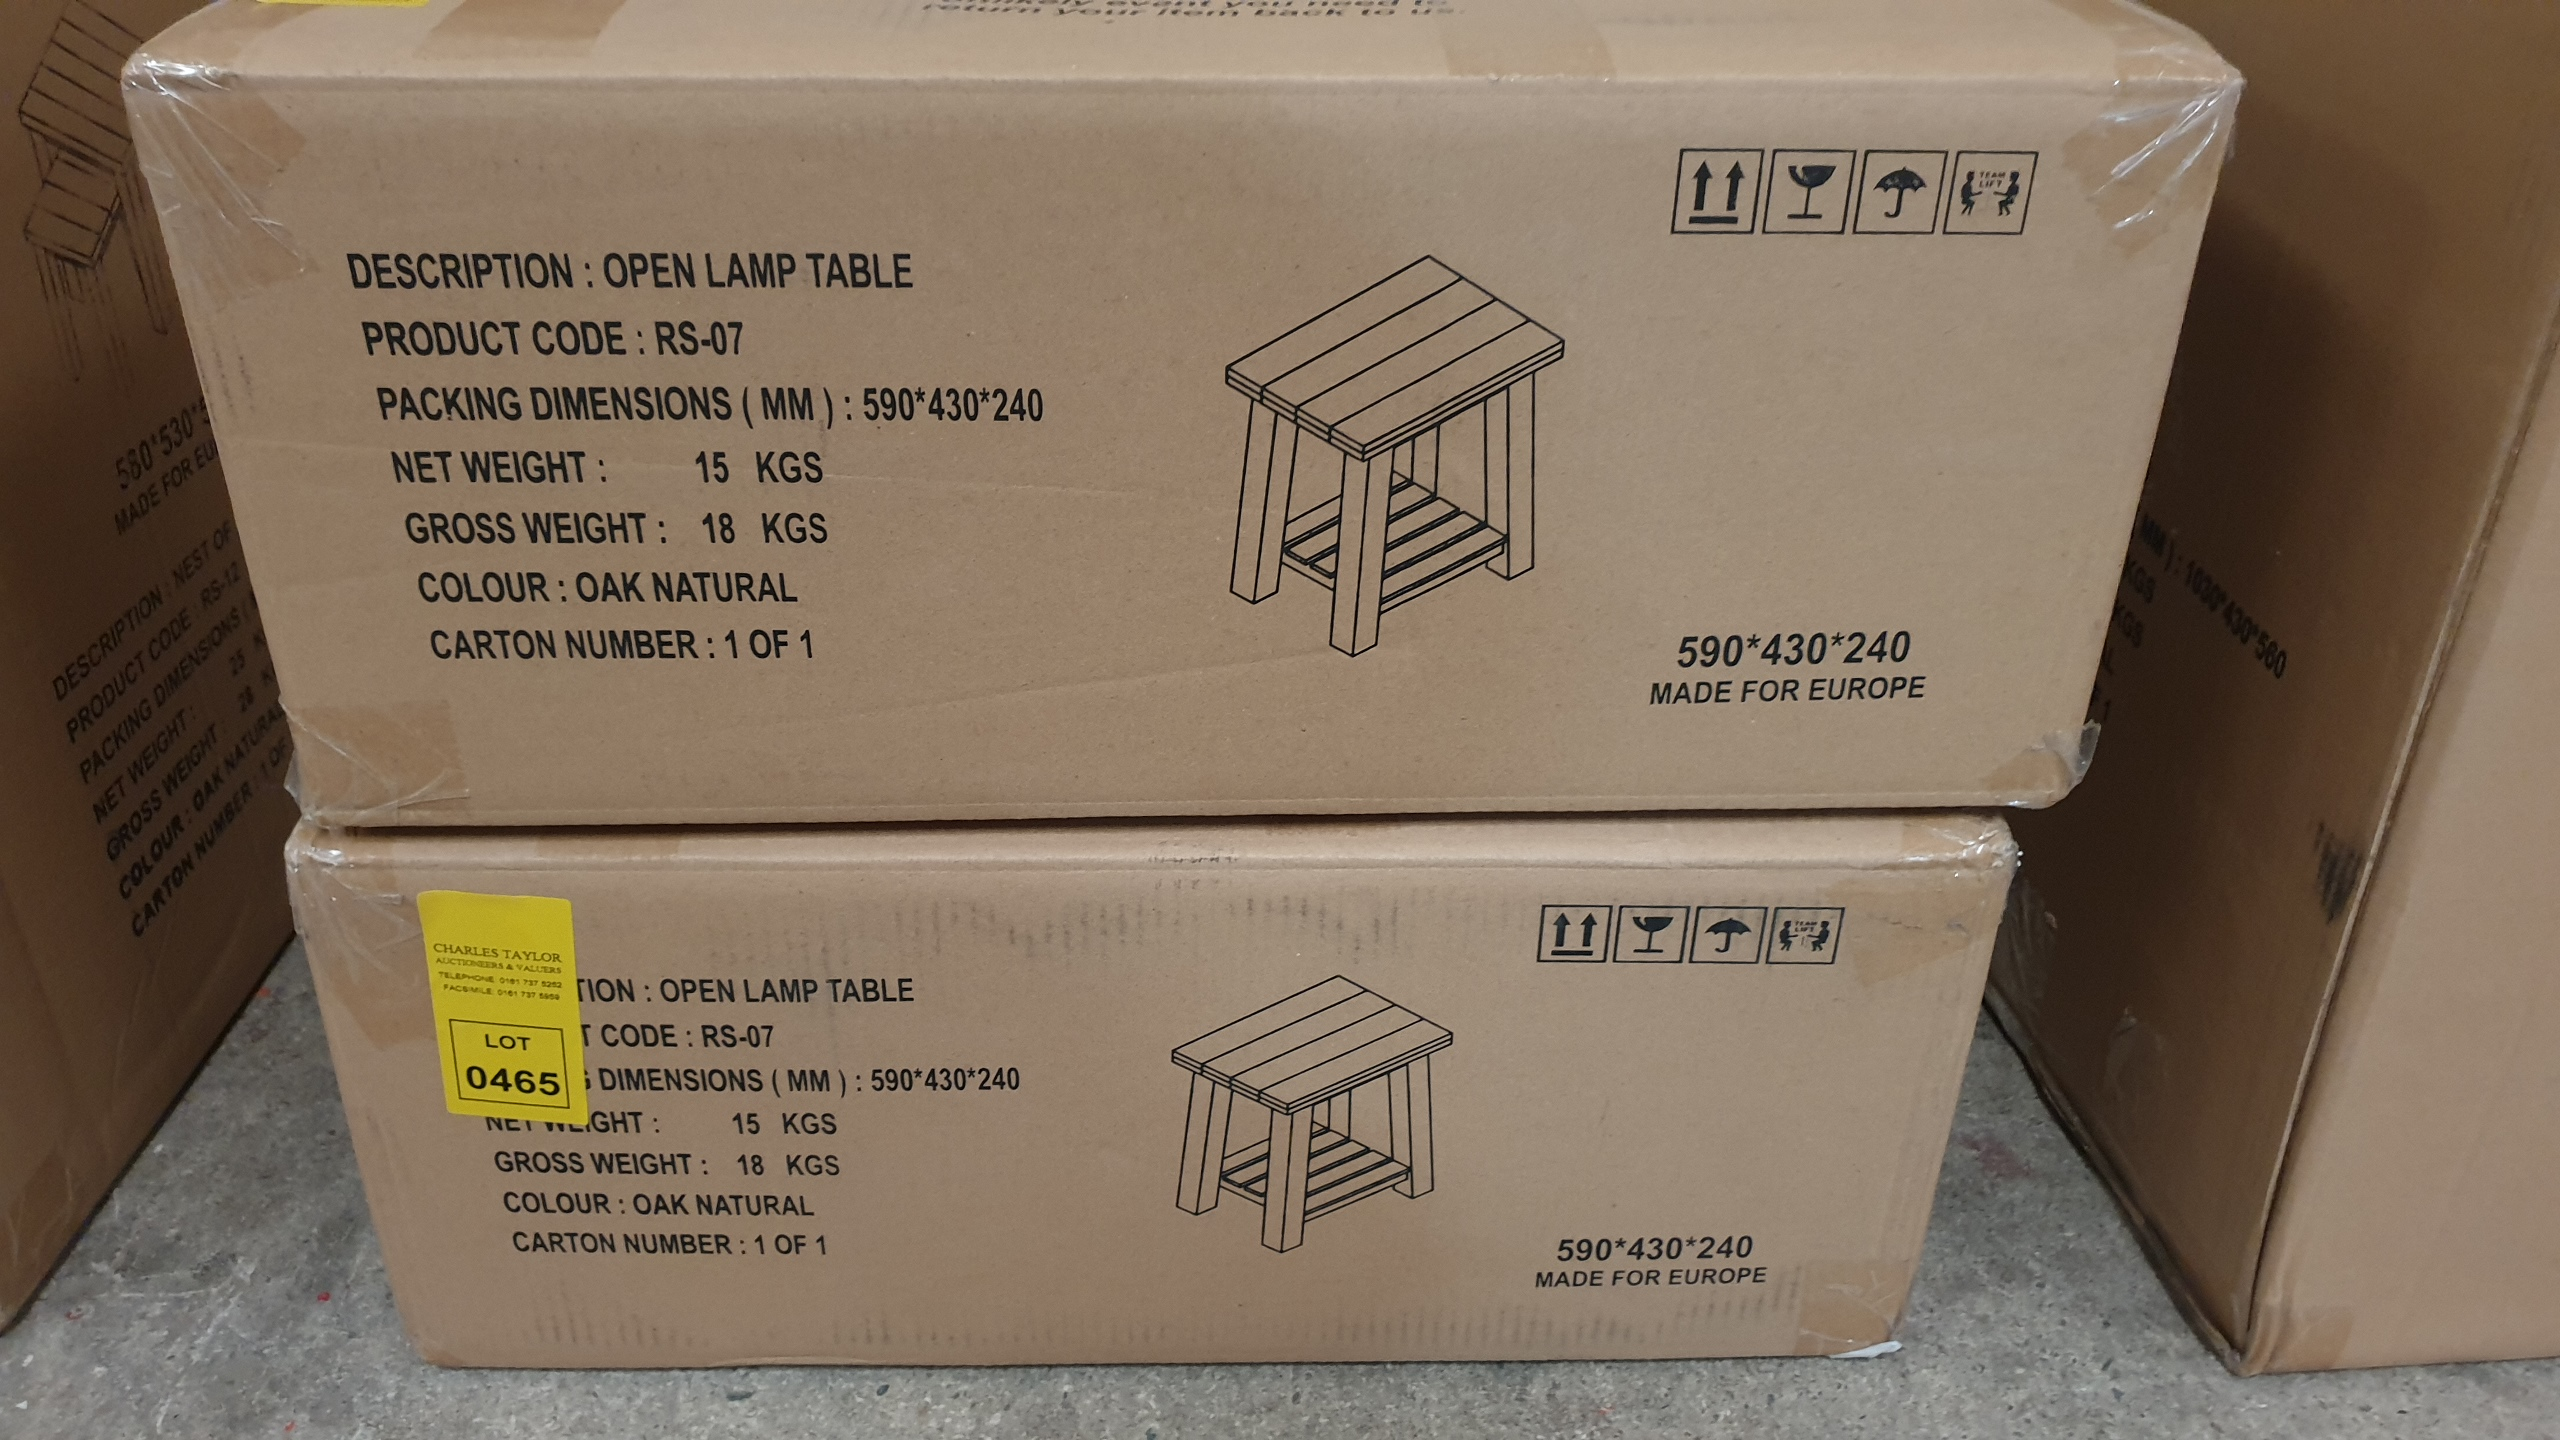 Lote 464 - BRAND NEW BOXED OPEN LAMP TABLE